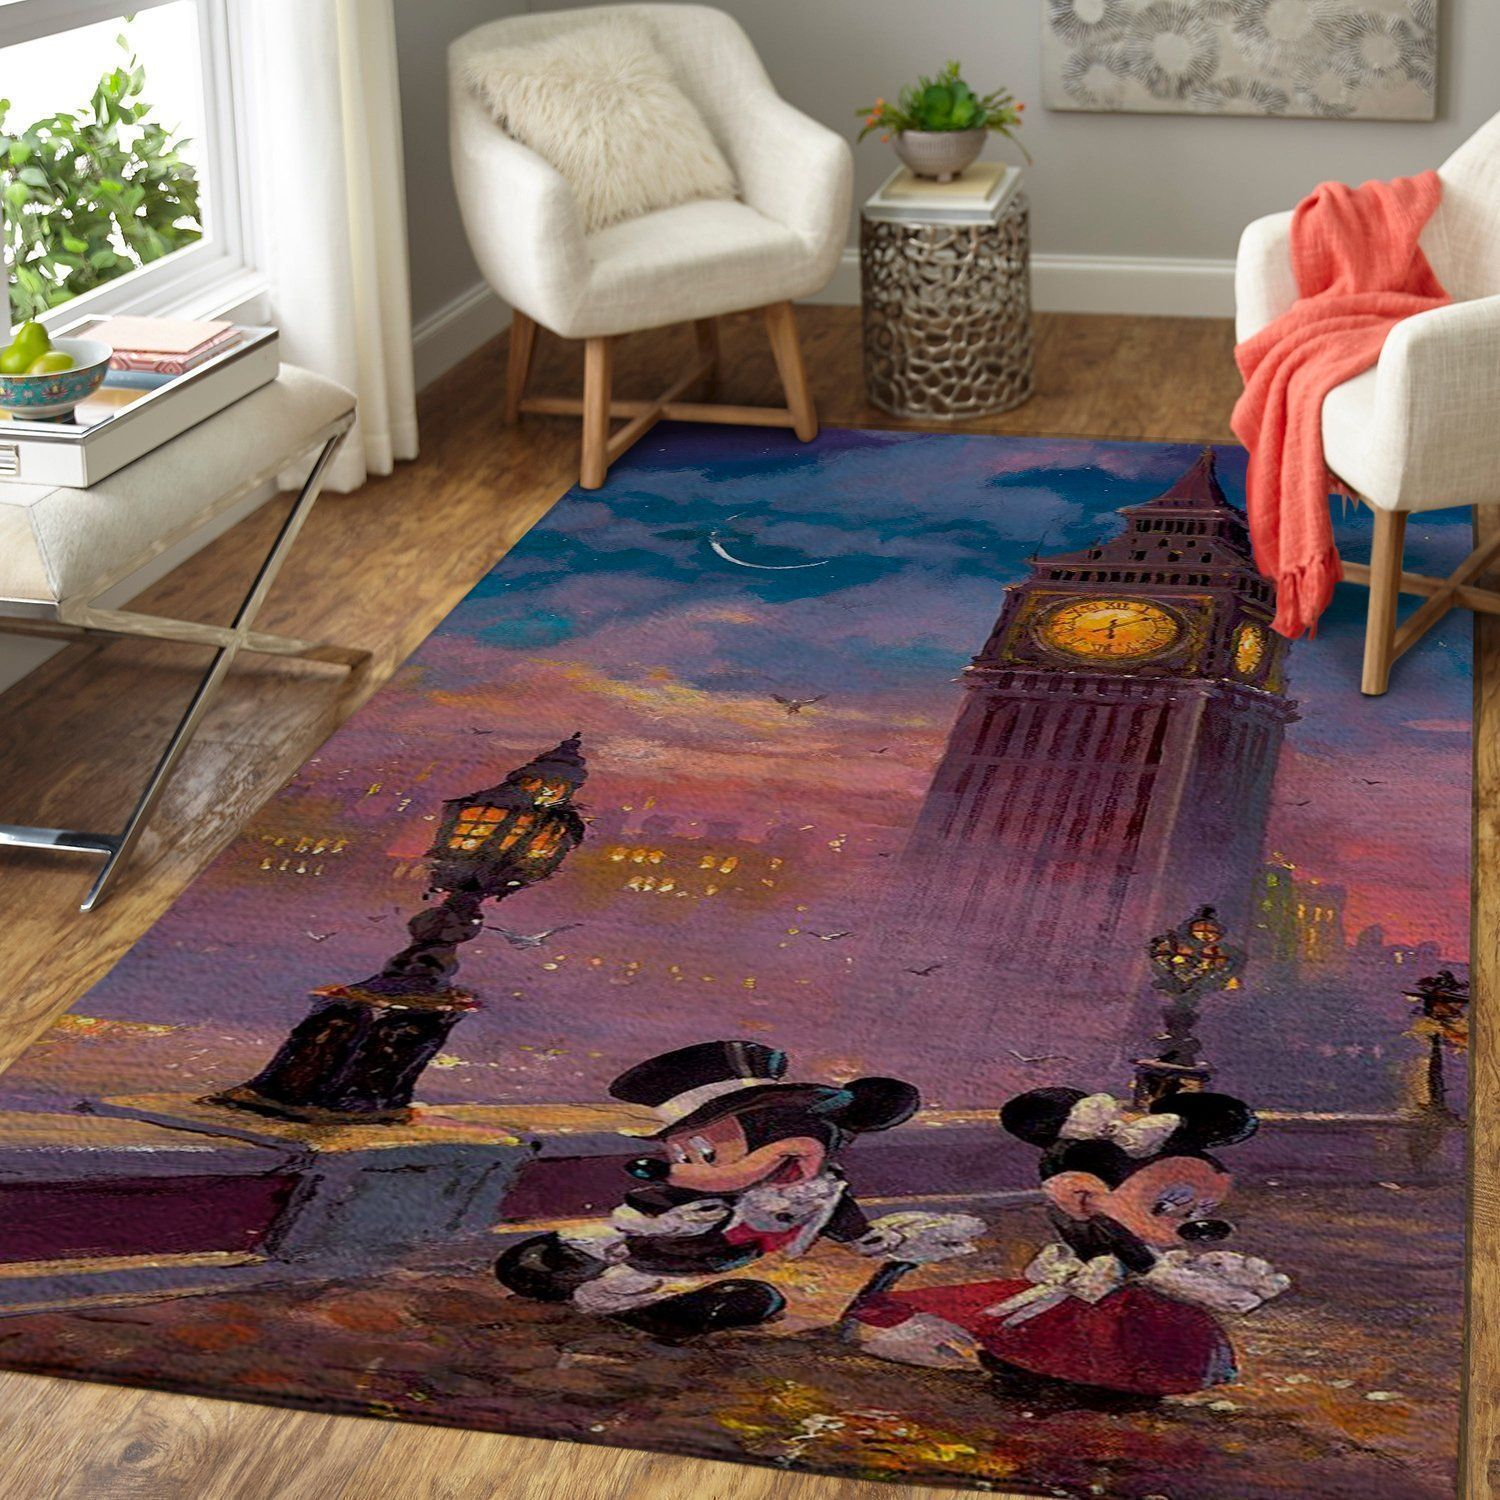 Mickey Mouse Area Rugs, Disney Movie Living Room Carpet, Custom Floor Decor 0